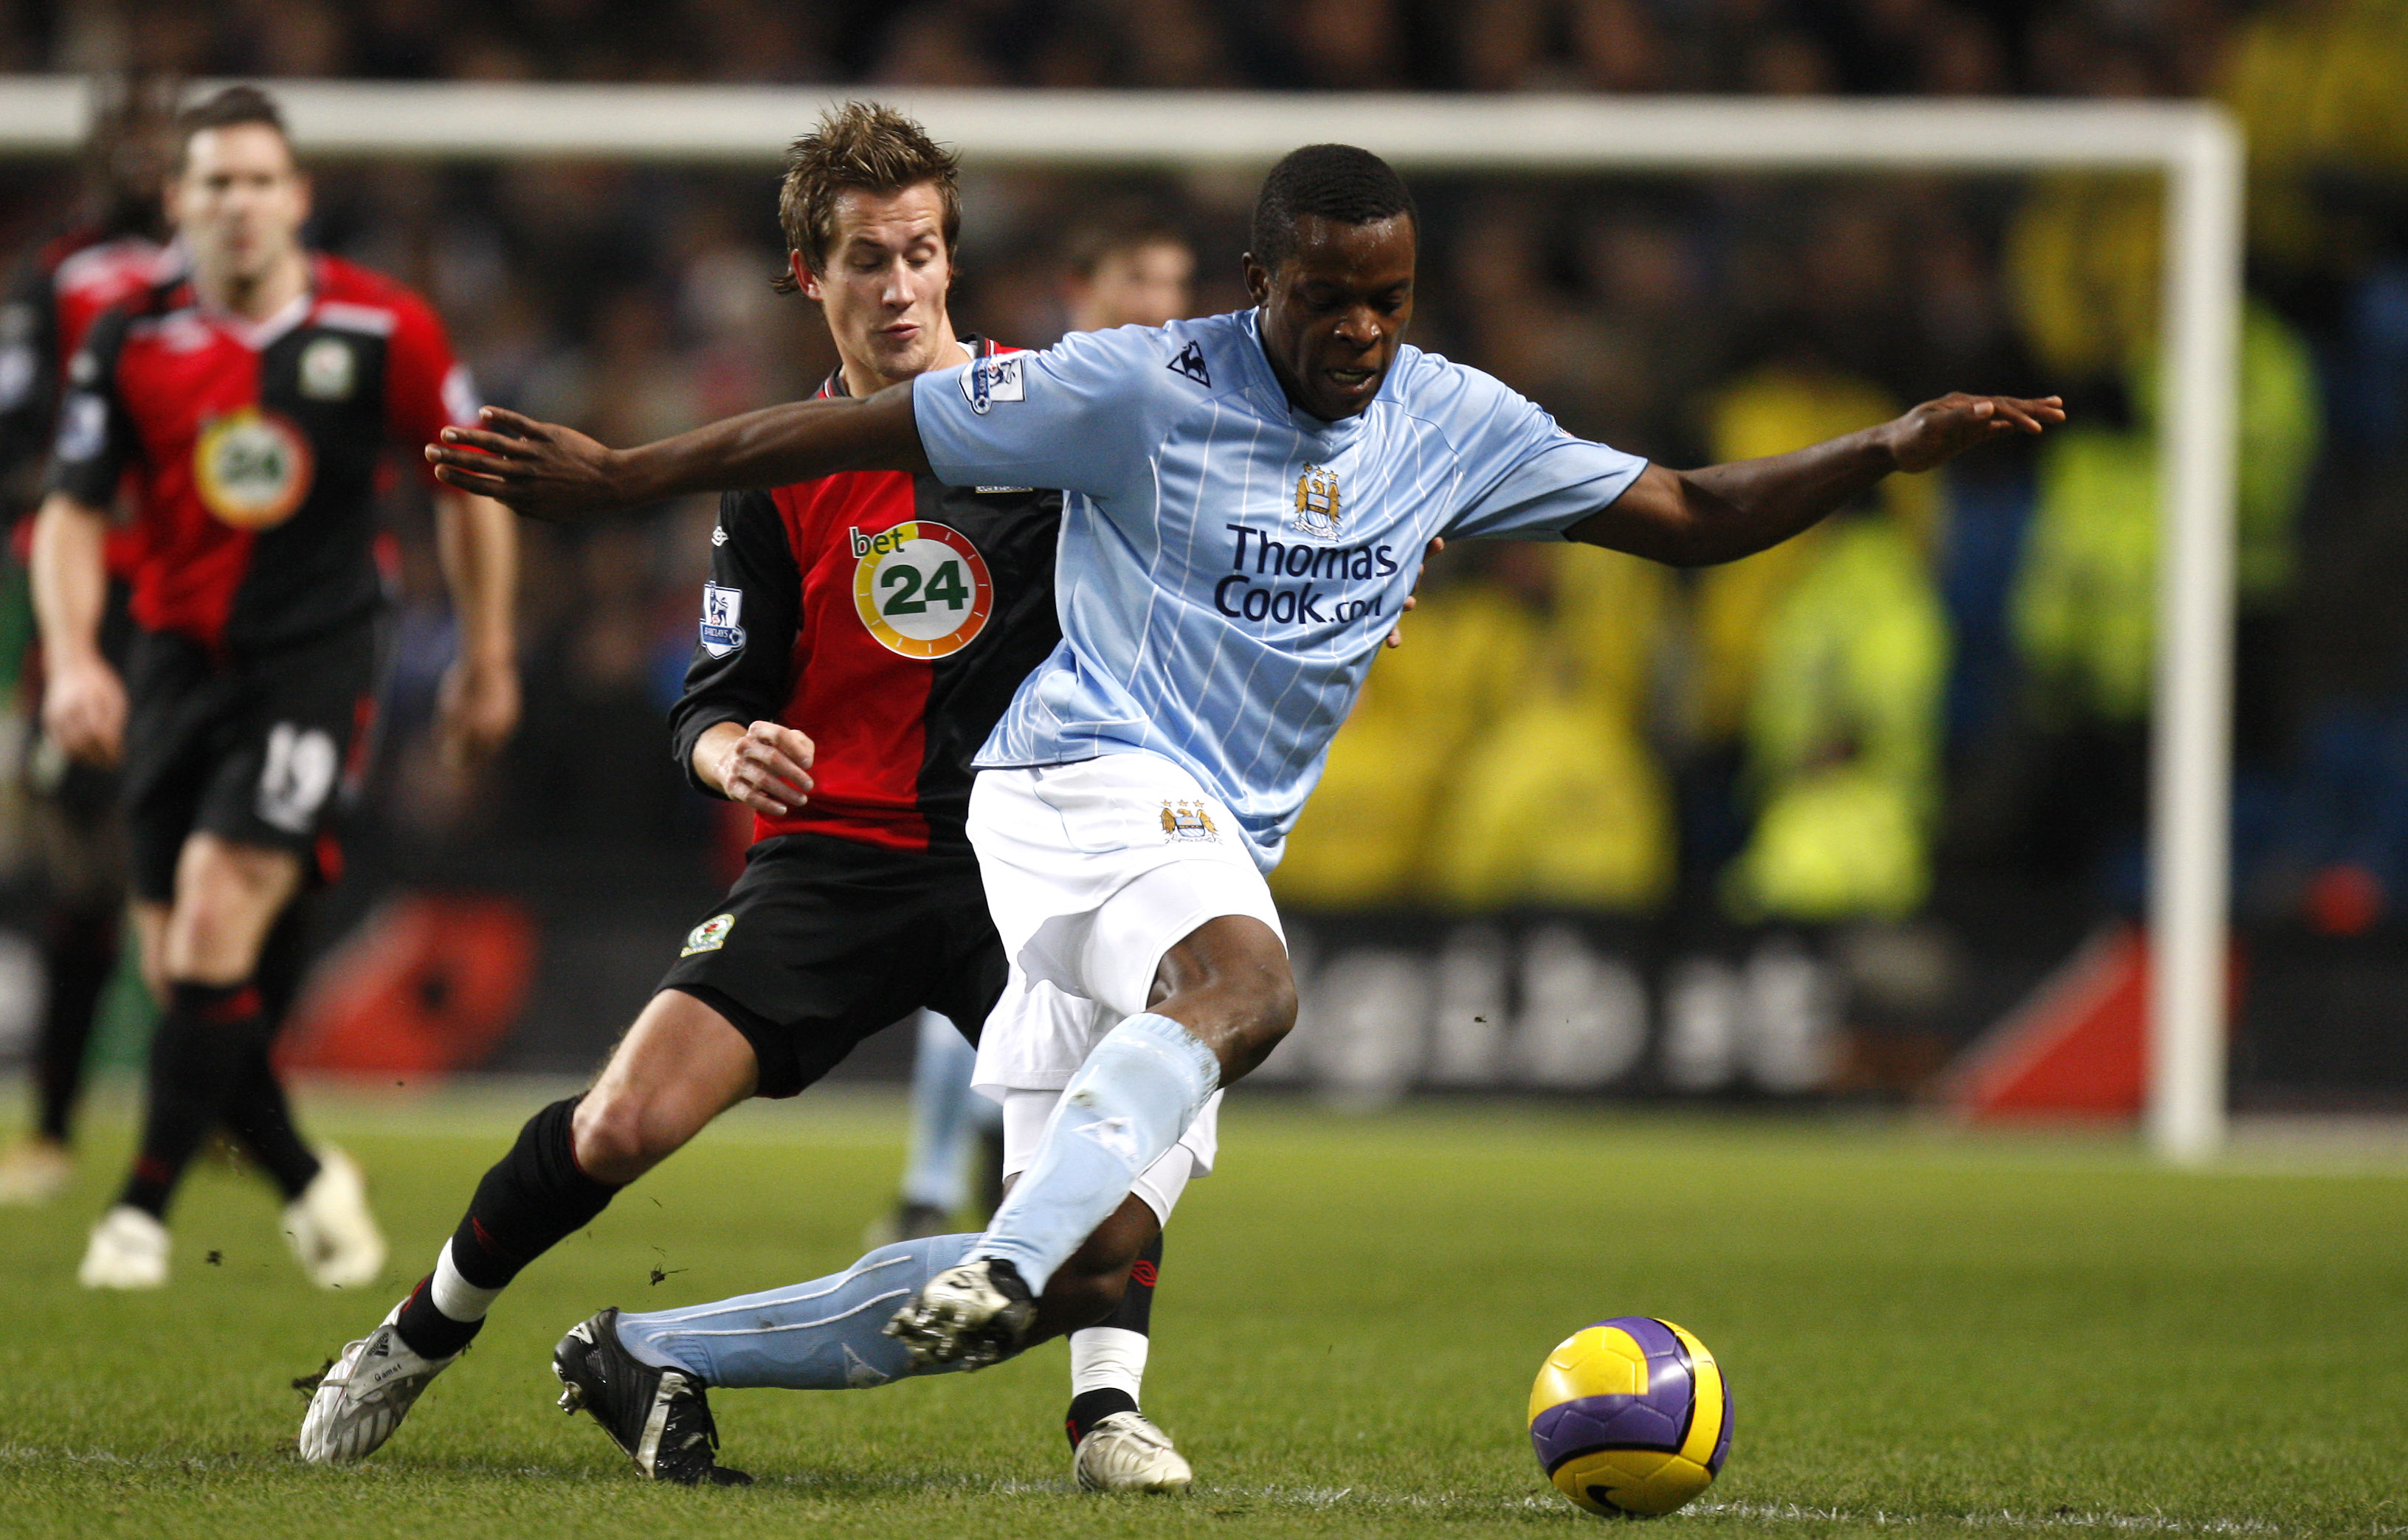 Machester City's Nedum Onuoha, right, keeps the ball from Blackburn's Morten Gamst Pedersen during their English Premier League soccer match at The Ci...